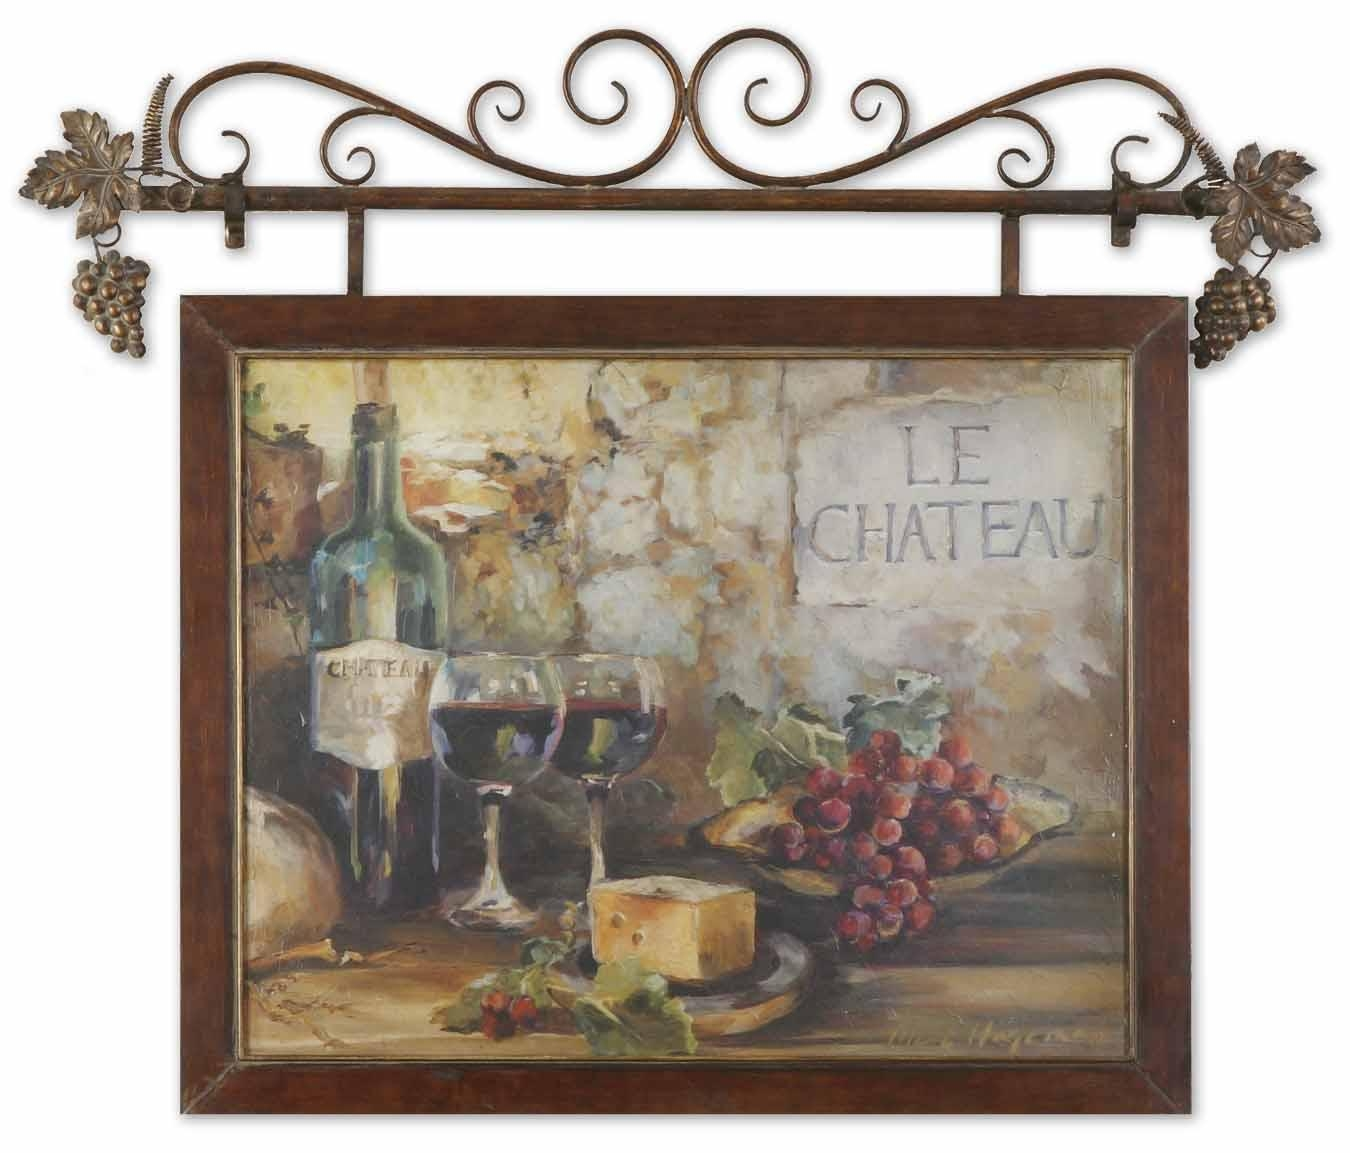 Tuscan Wall Decor Design Inspiration Tuscan Wall Decor – Home Throughout Italian Wall Art Decor (View 13 of 20)